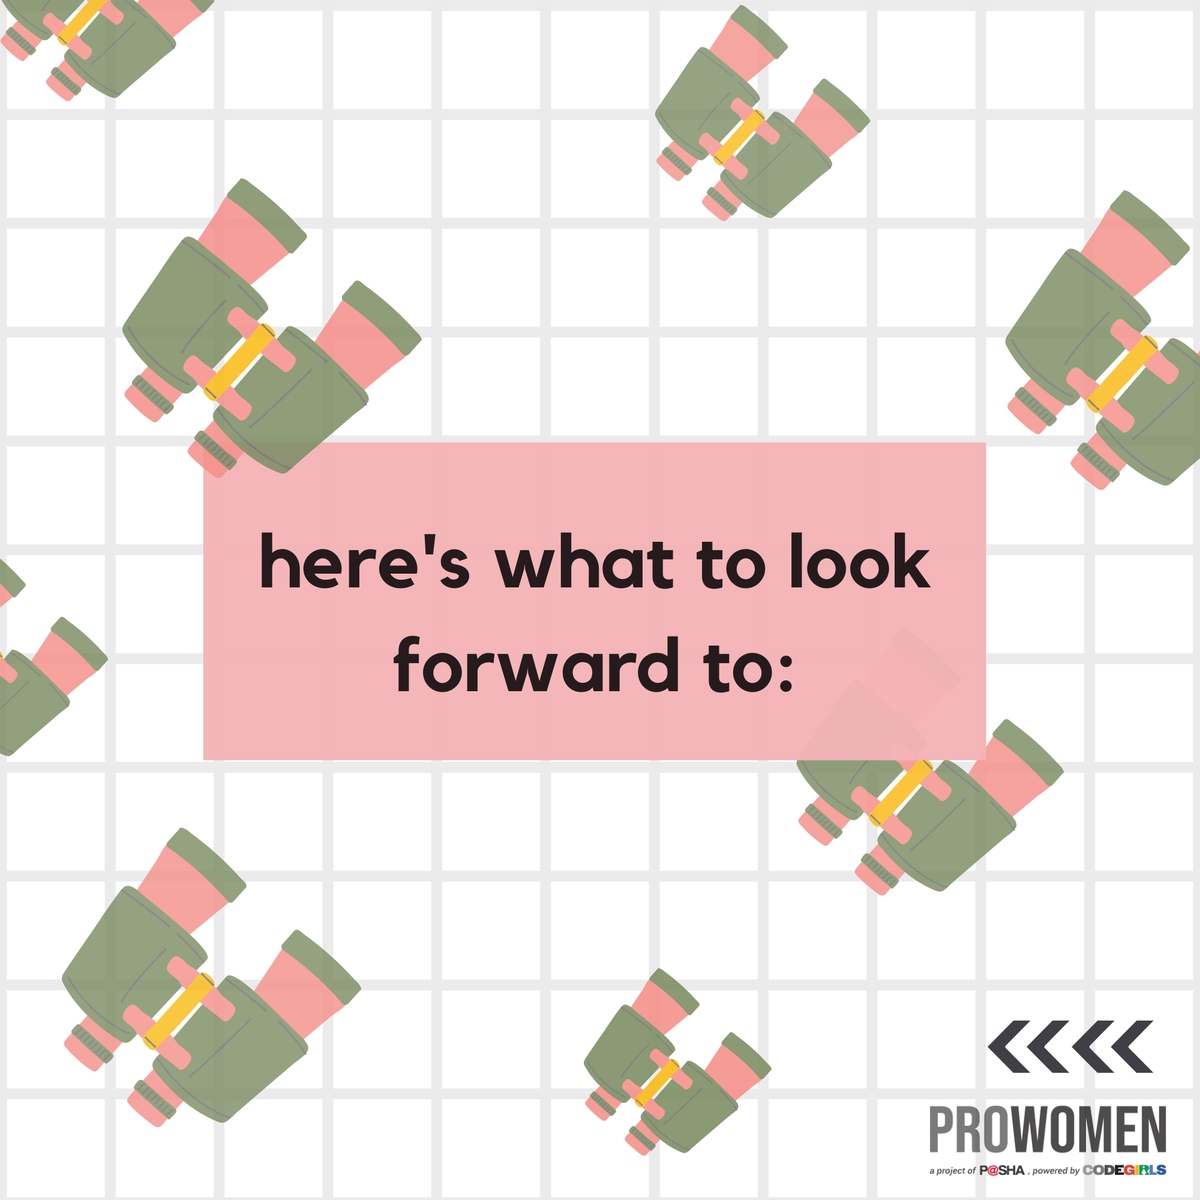 Its going be quite a sight!  There's lots coming your way very soon!  #prowomen #nomoremanels #femaleempowerment #womenrights #femaleleaderspic.twitter.com/Y5dKxezbk9